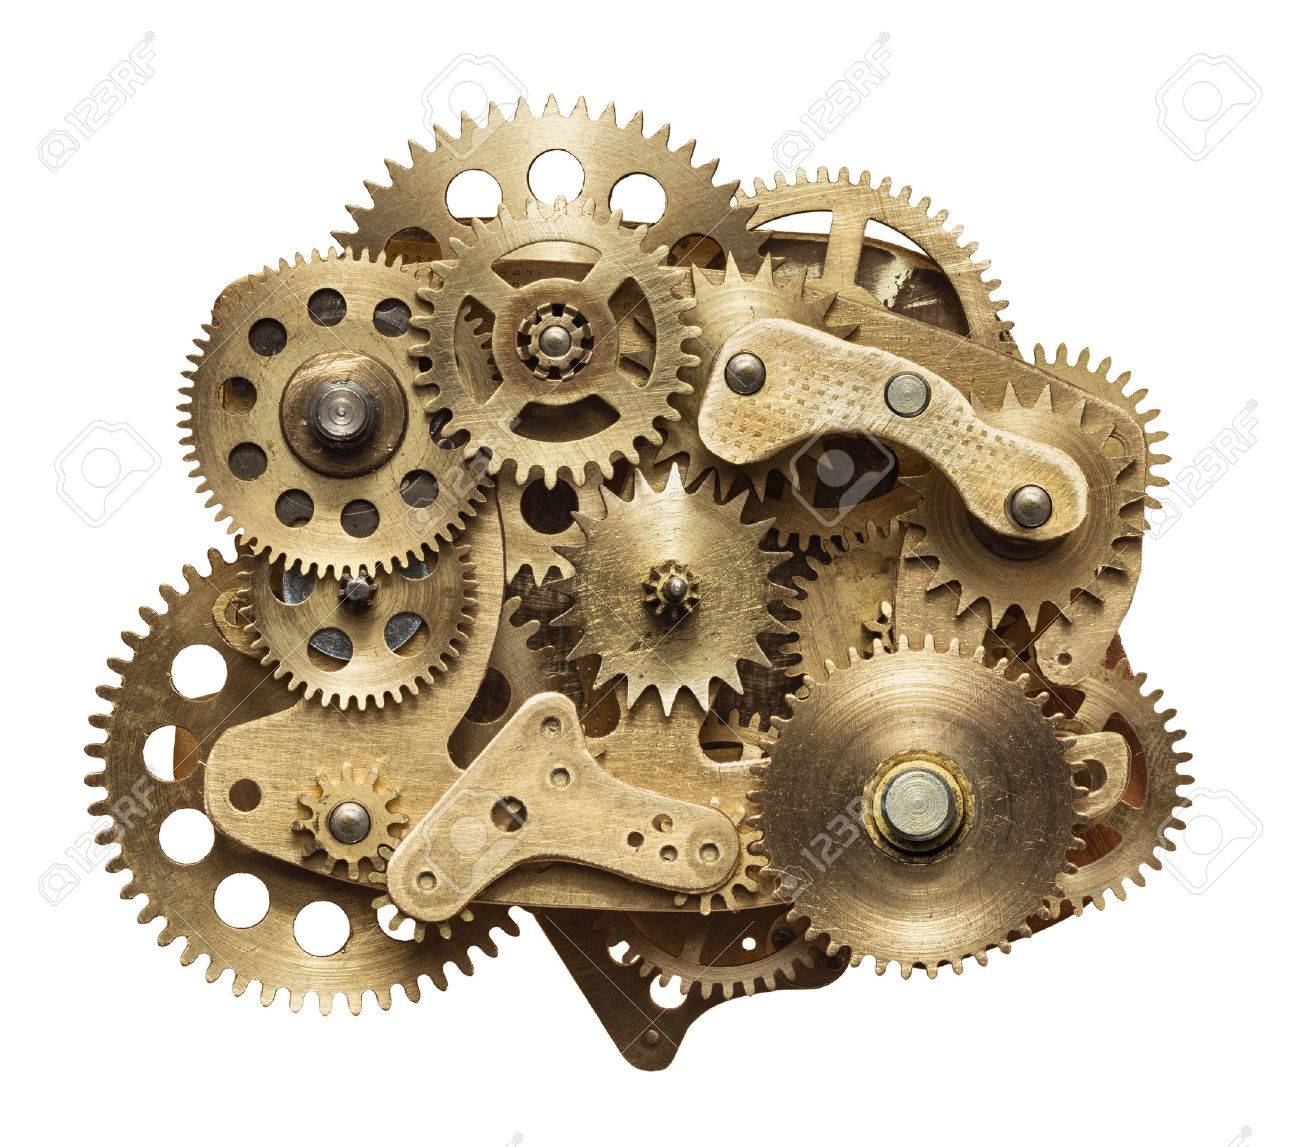 Metal collage of clockwork gears isolated on white background Stock Photo - 48055081